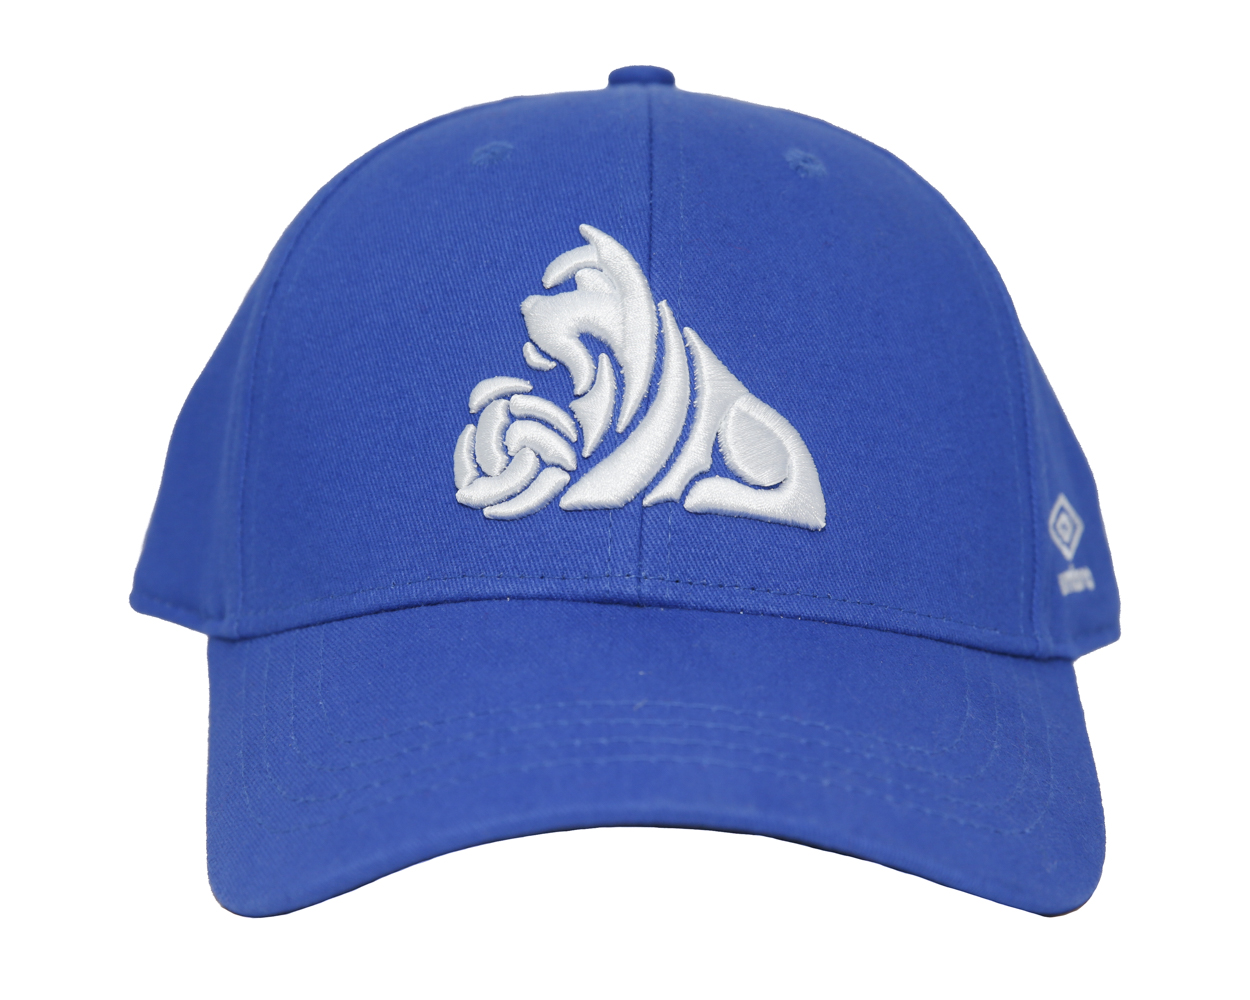 Adult Umbro Blue Cap